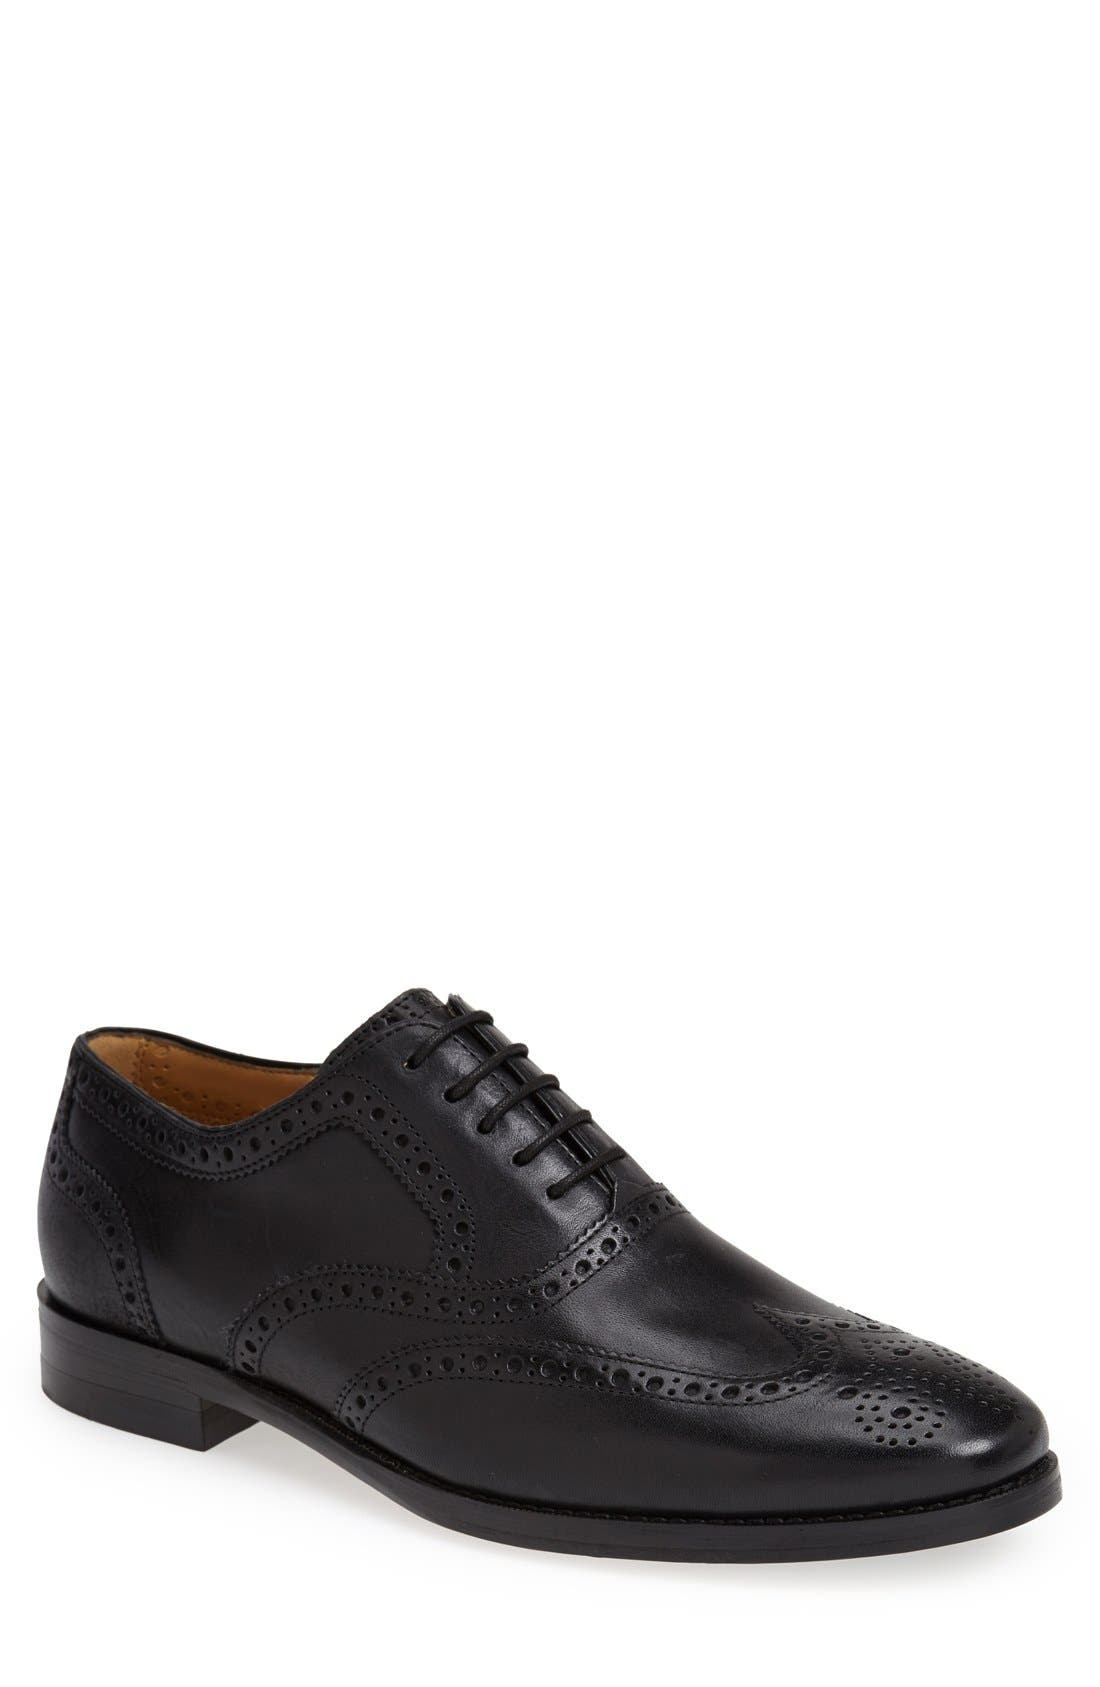 'Cambridge' Wingtip,                         Main,                         color, BLACK